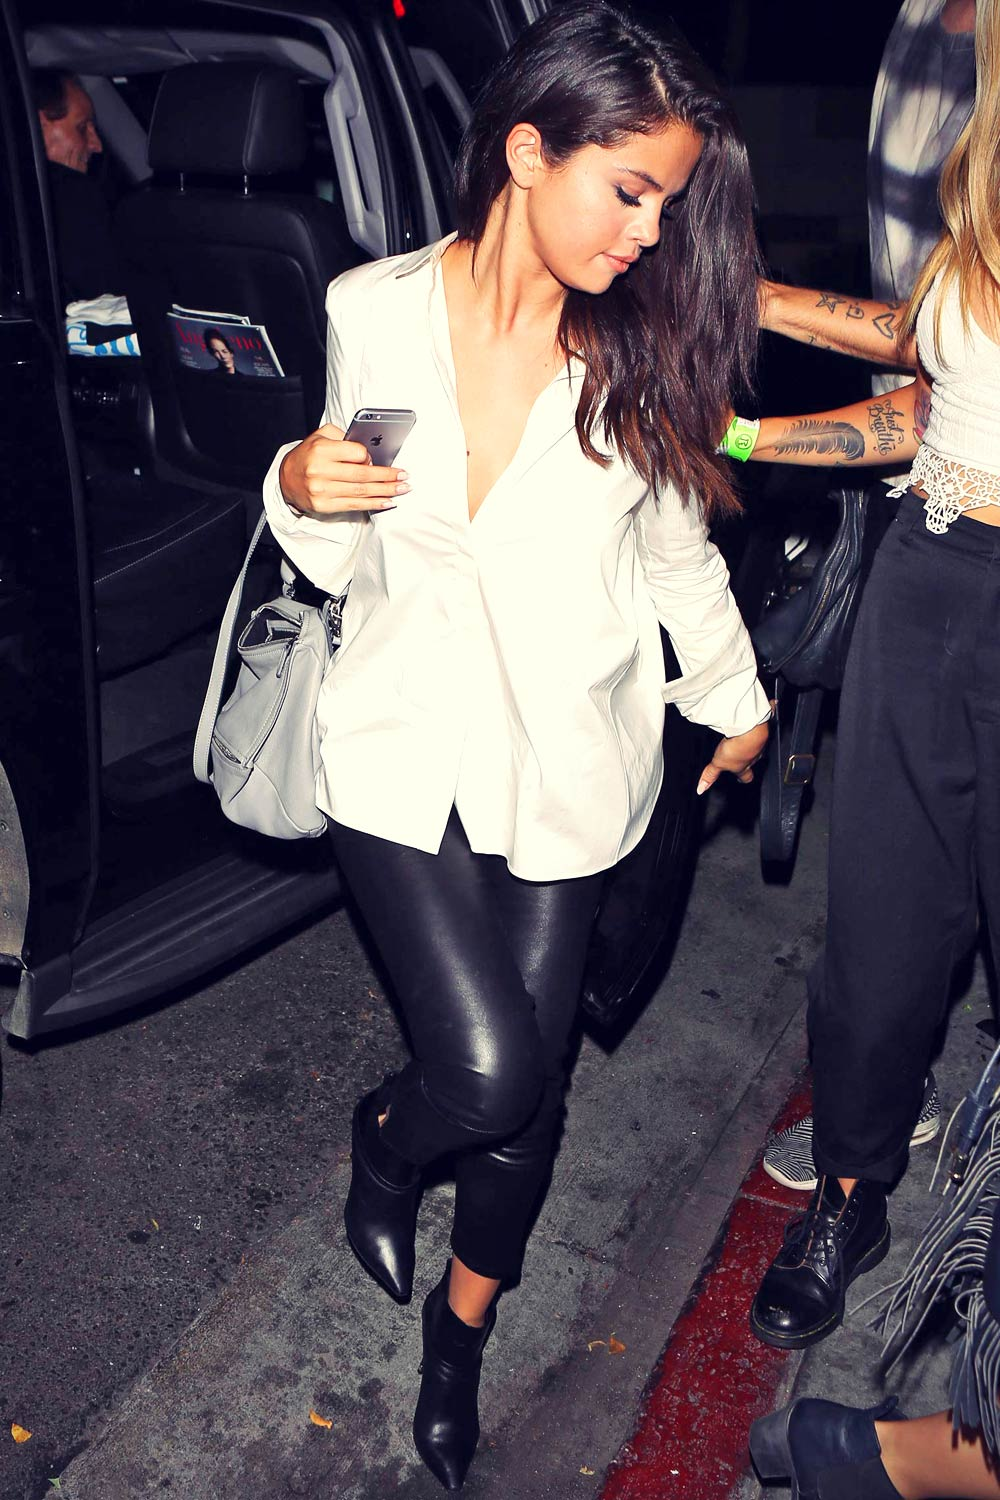 Selena Gomez seen leaving The Nice Guy restaurant